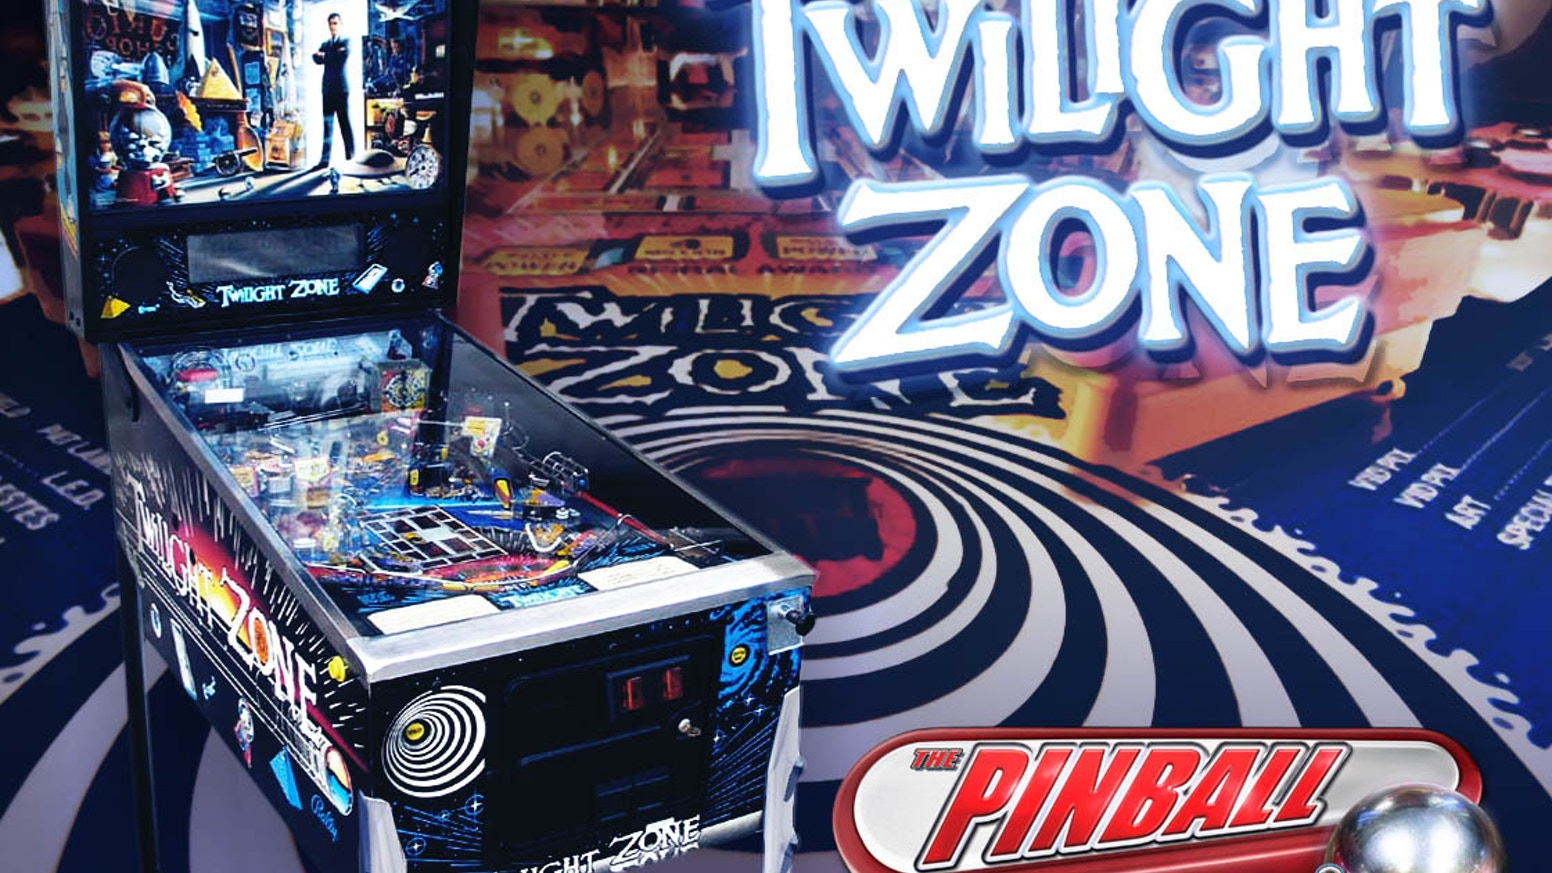 Pinball Arcade: The Twilight Zone by FarSight Studios — Kickstarter